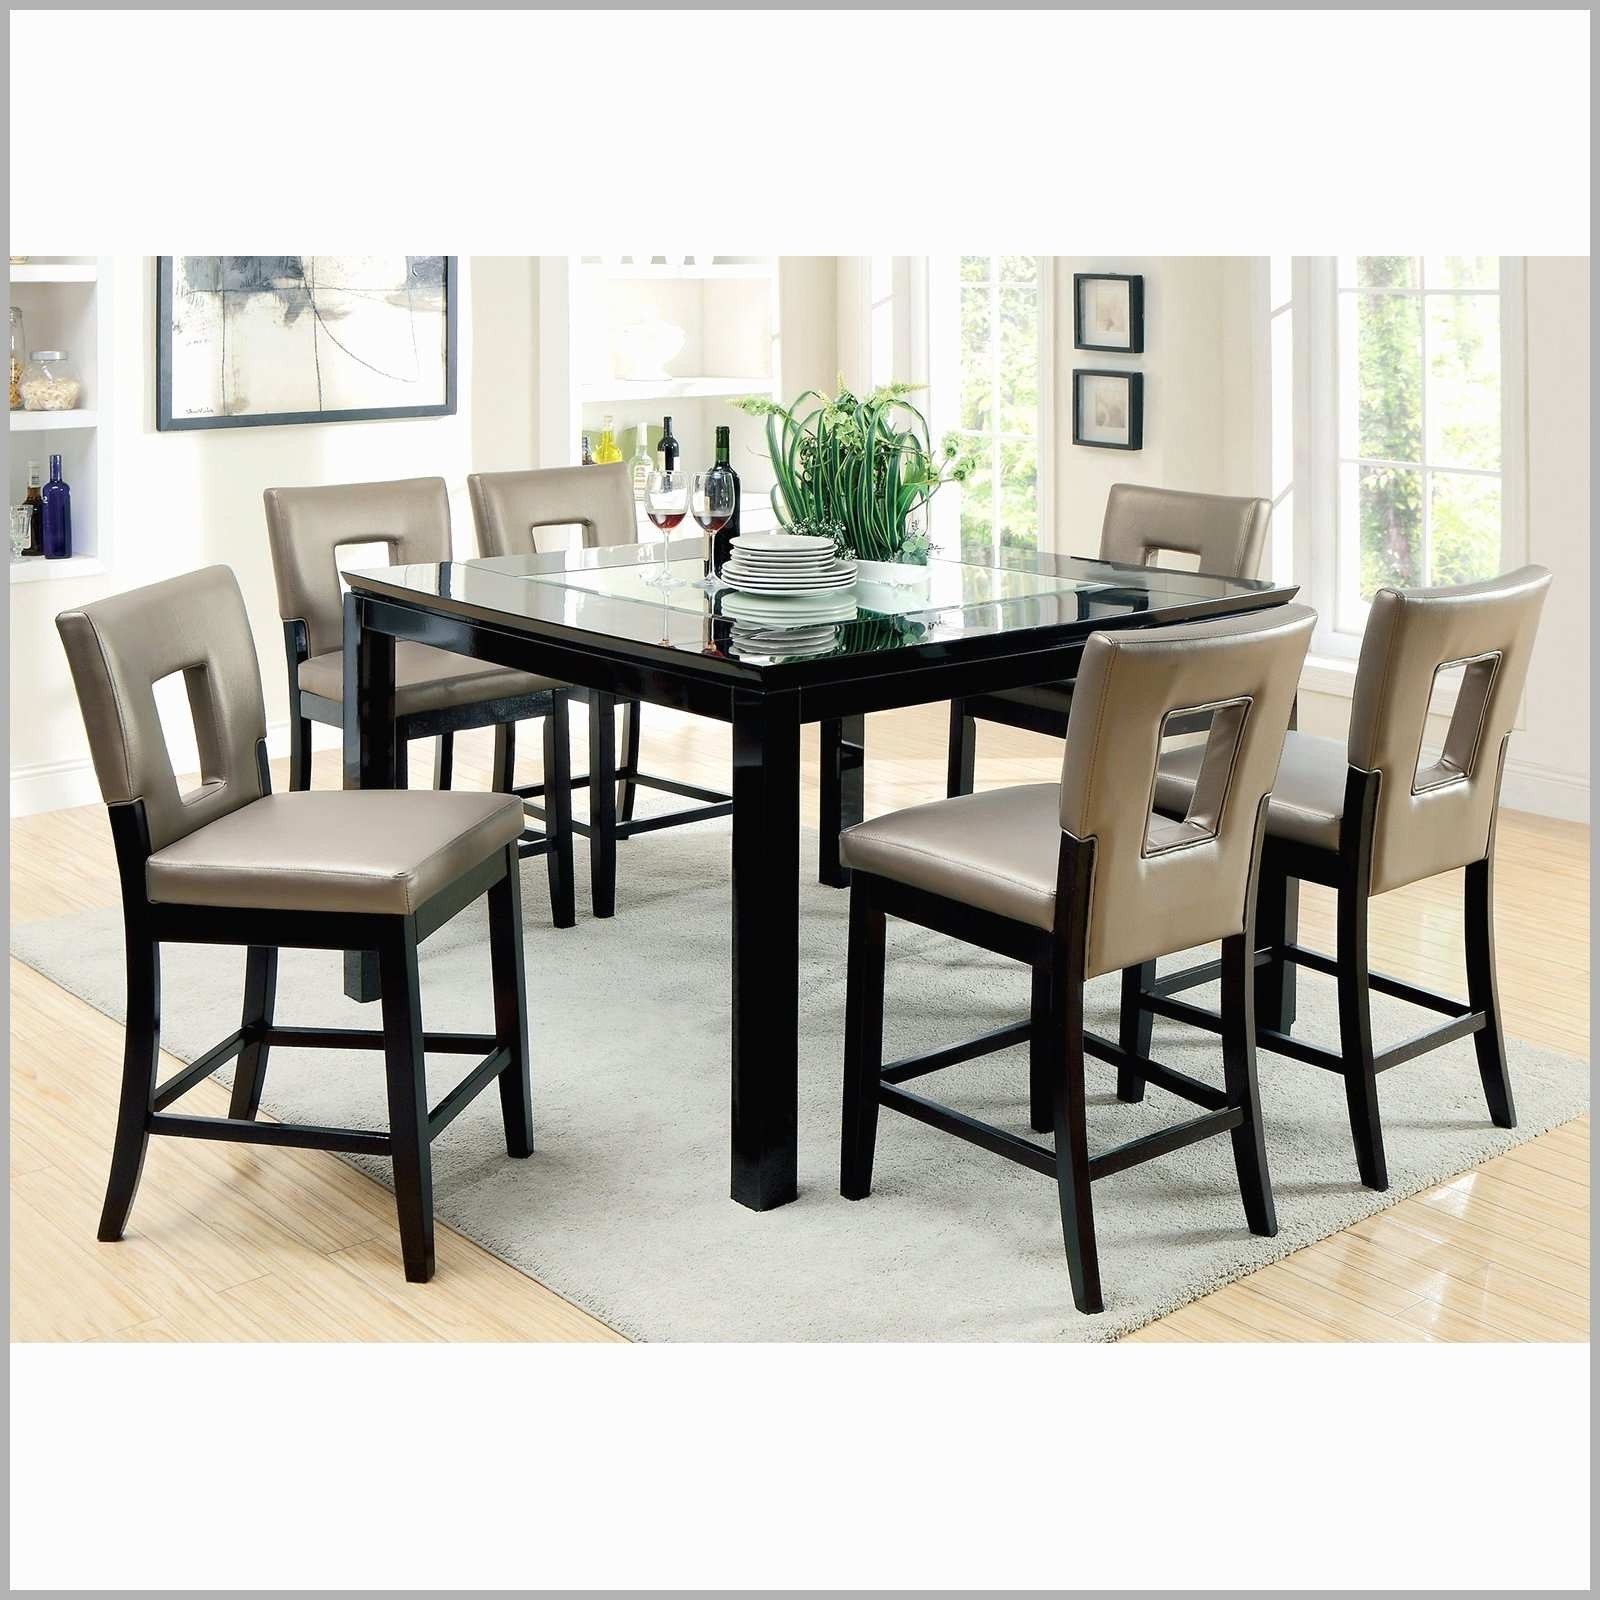 White High Gloss Extending Dining Table Luxury 8 Seater Dining Table Regarding Fashionable Extending Dining Tables And Chairs (View 25 of 25)